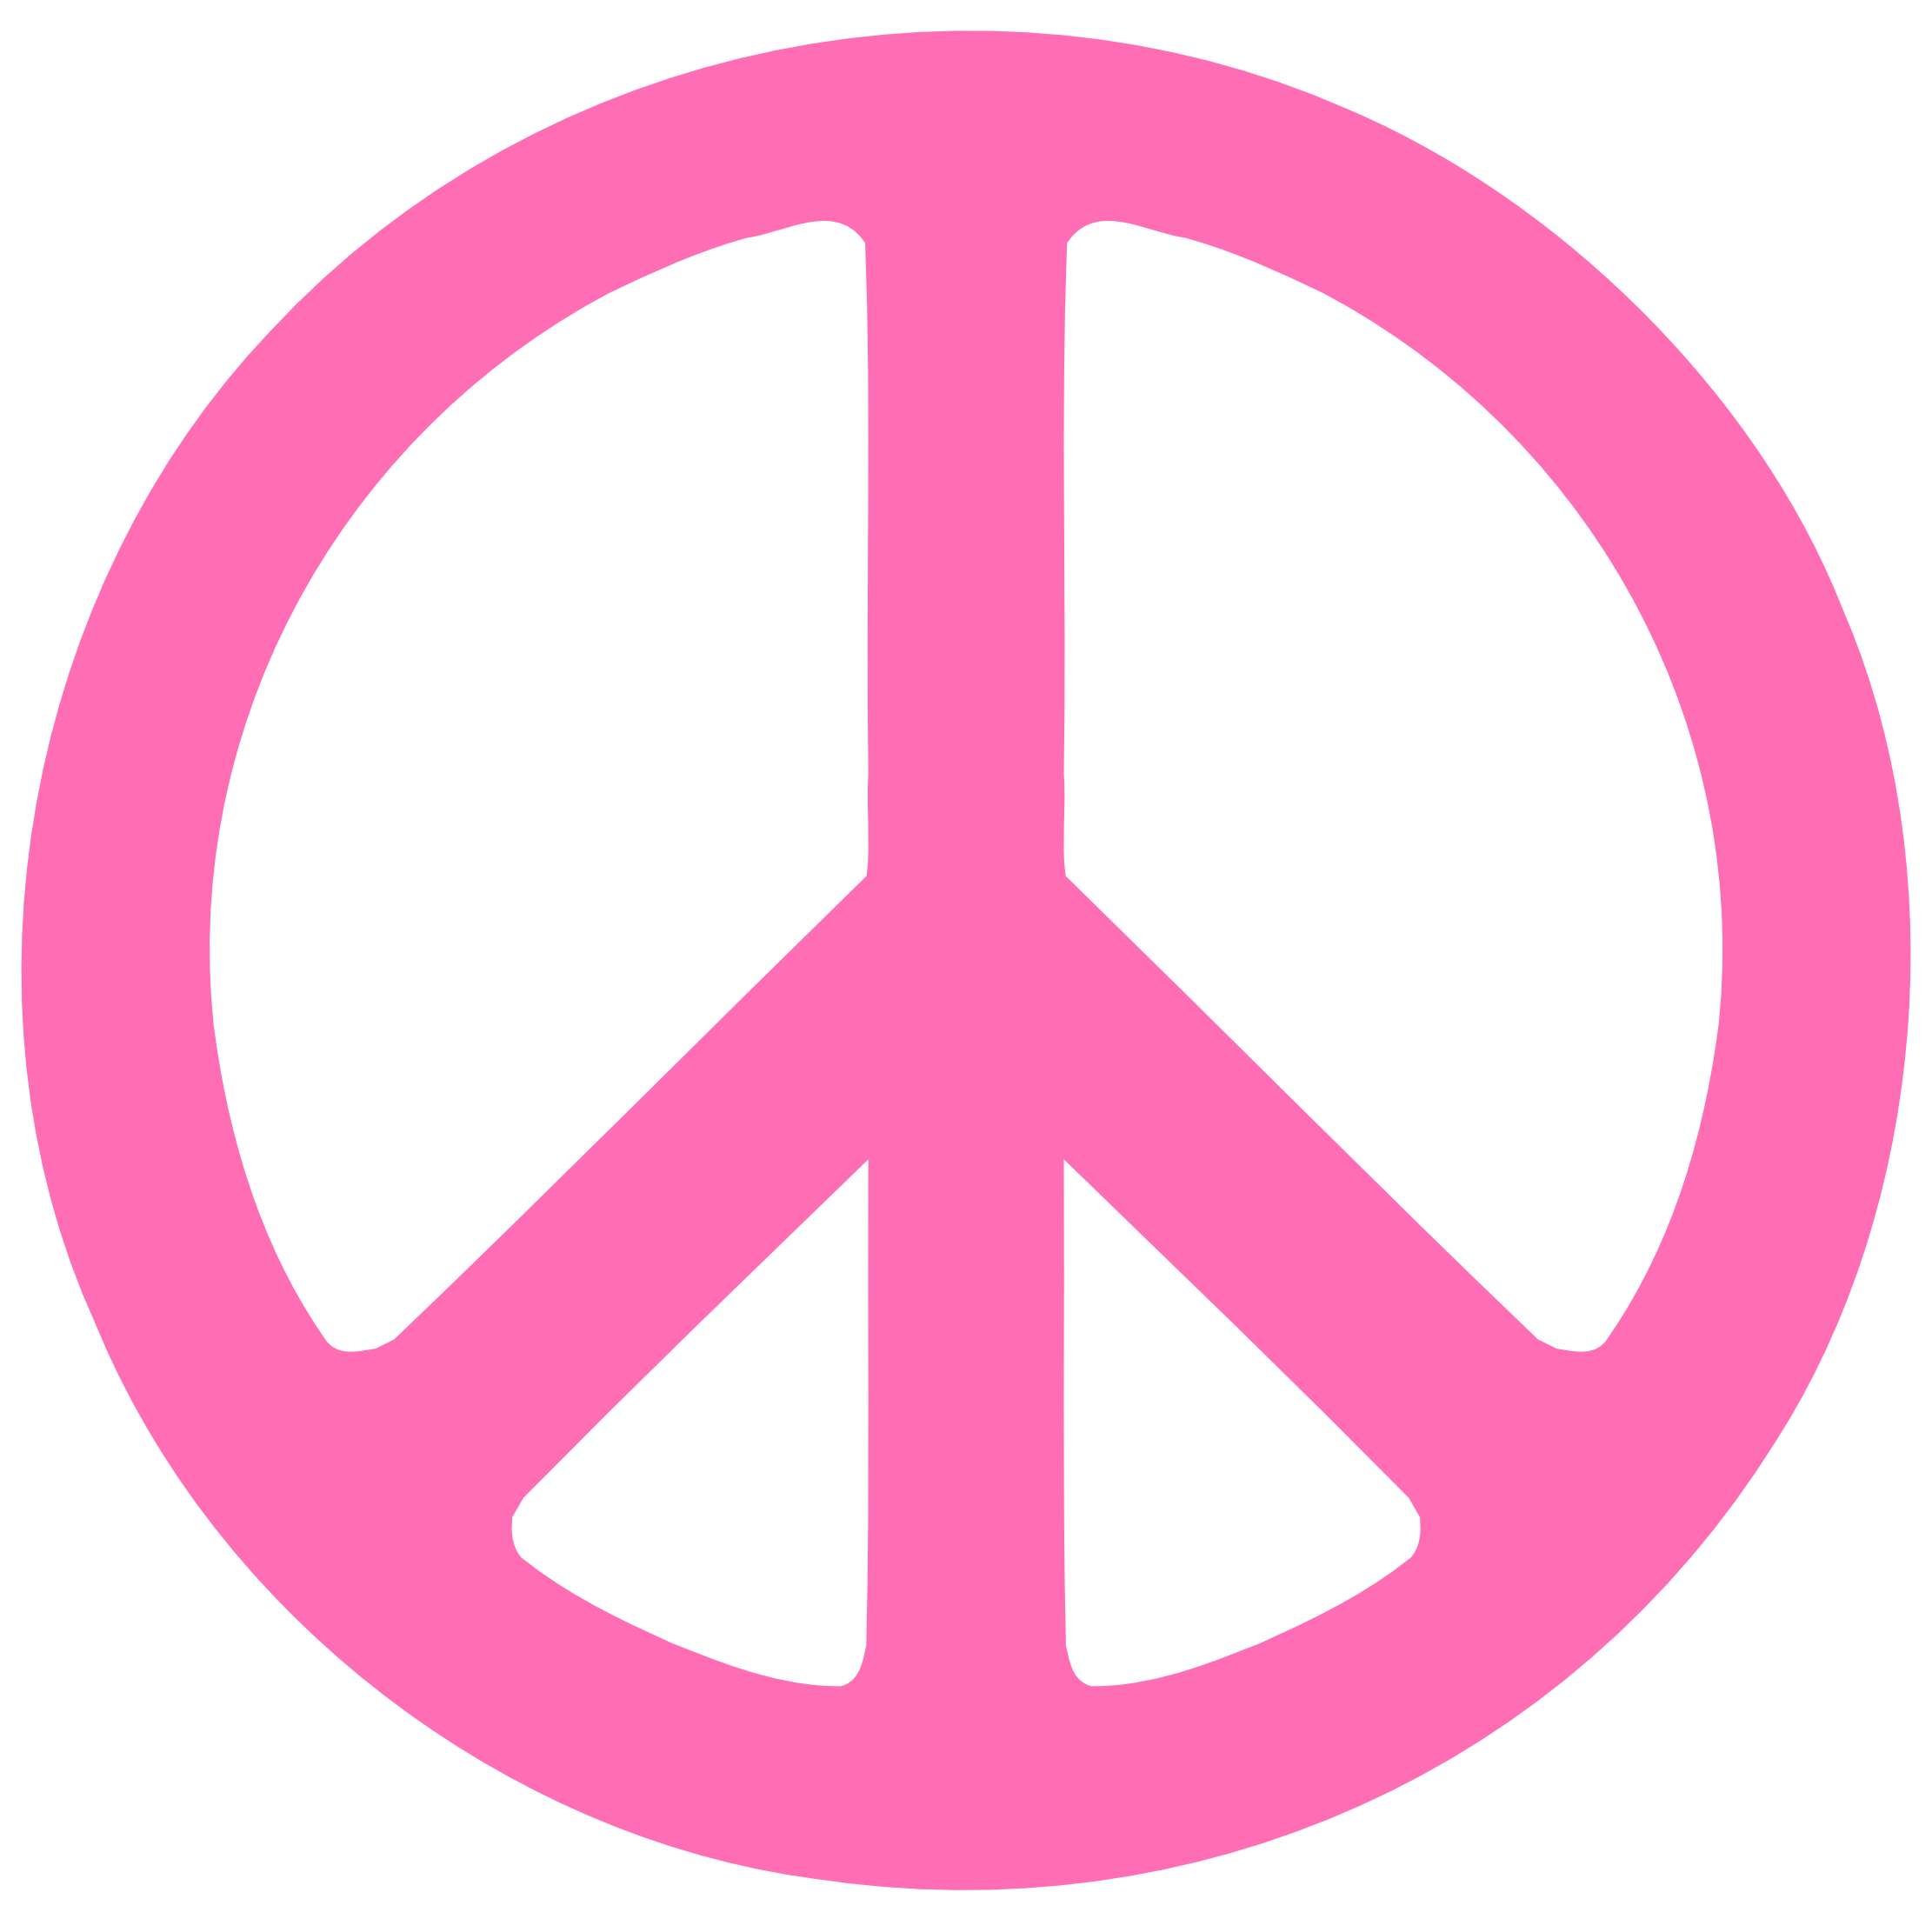 Peace Sign clipart pink Images Free Sign pink%20peace%20sign%20clipart Panda